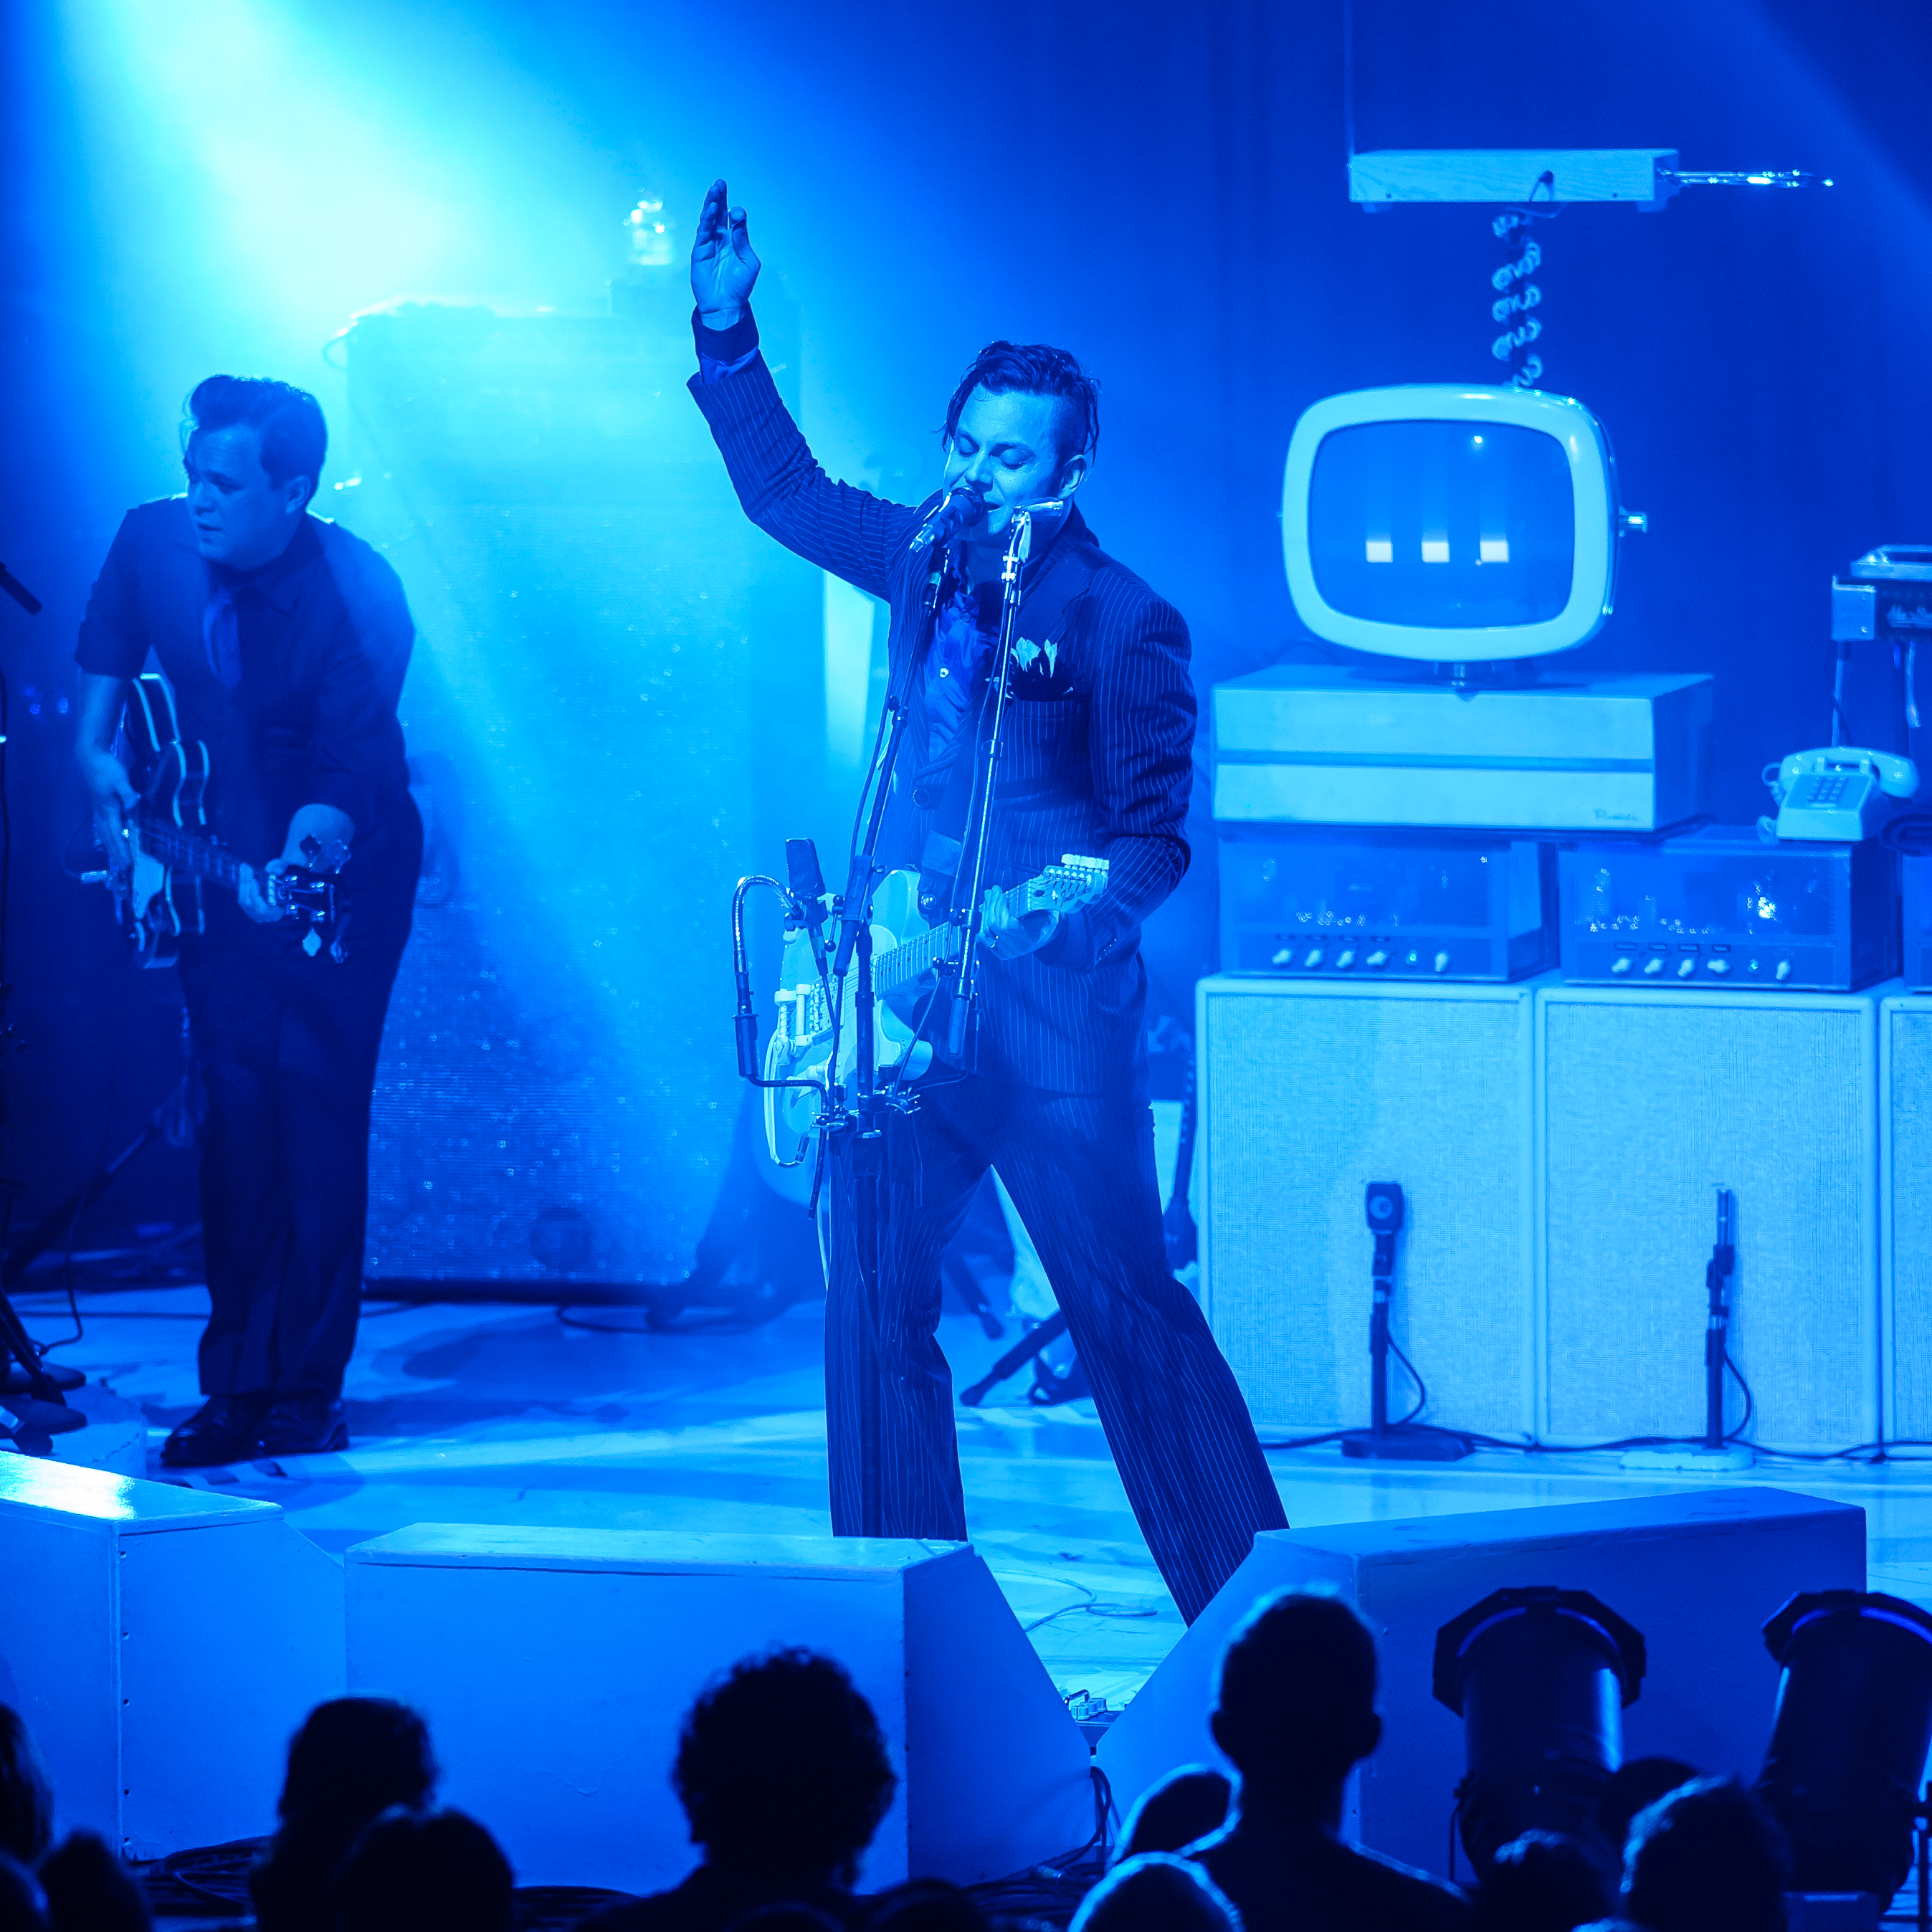 Jack White performs at Merriweather Post Pavilion in Columbia, MD.